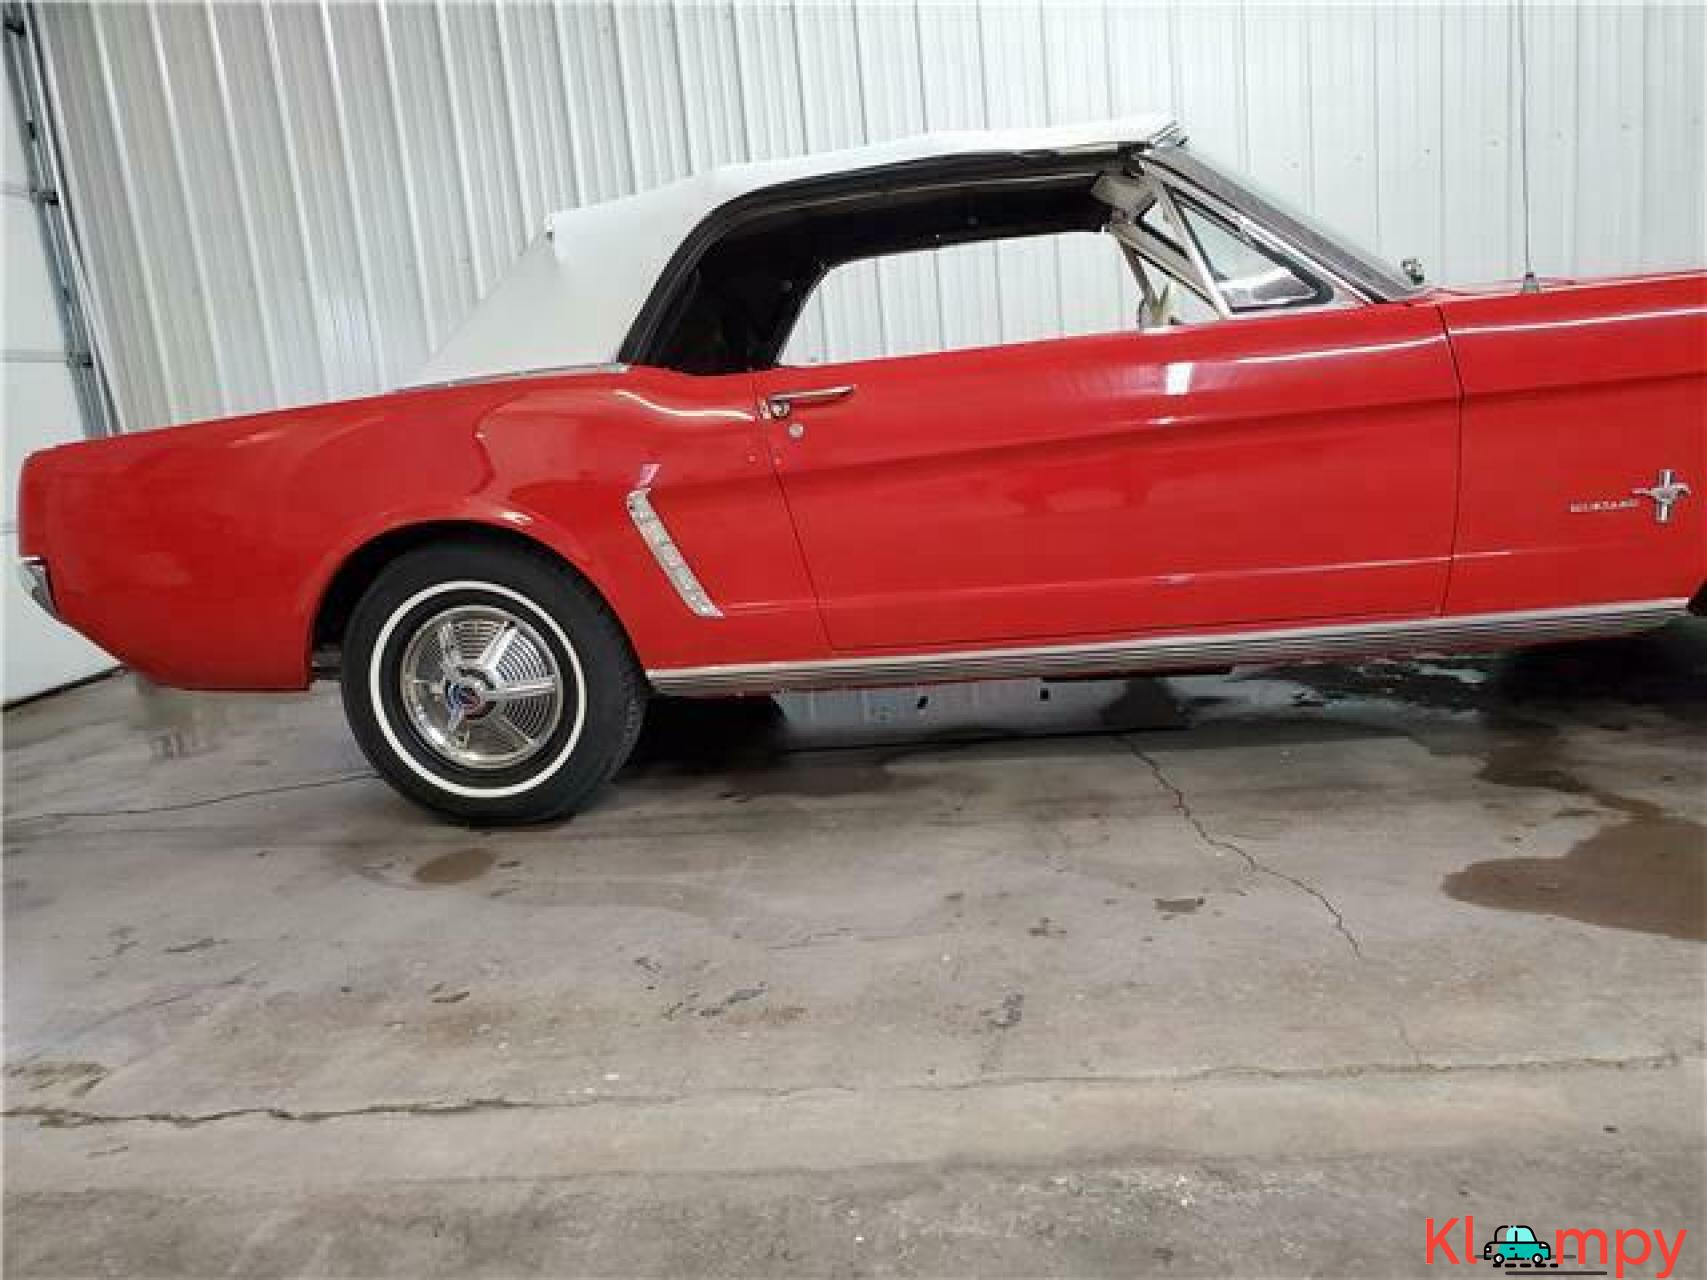 1965 Ford Mustang Rear Wheel Drive - 5/20